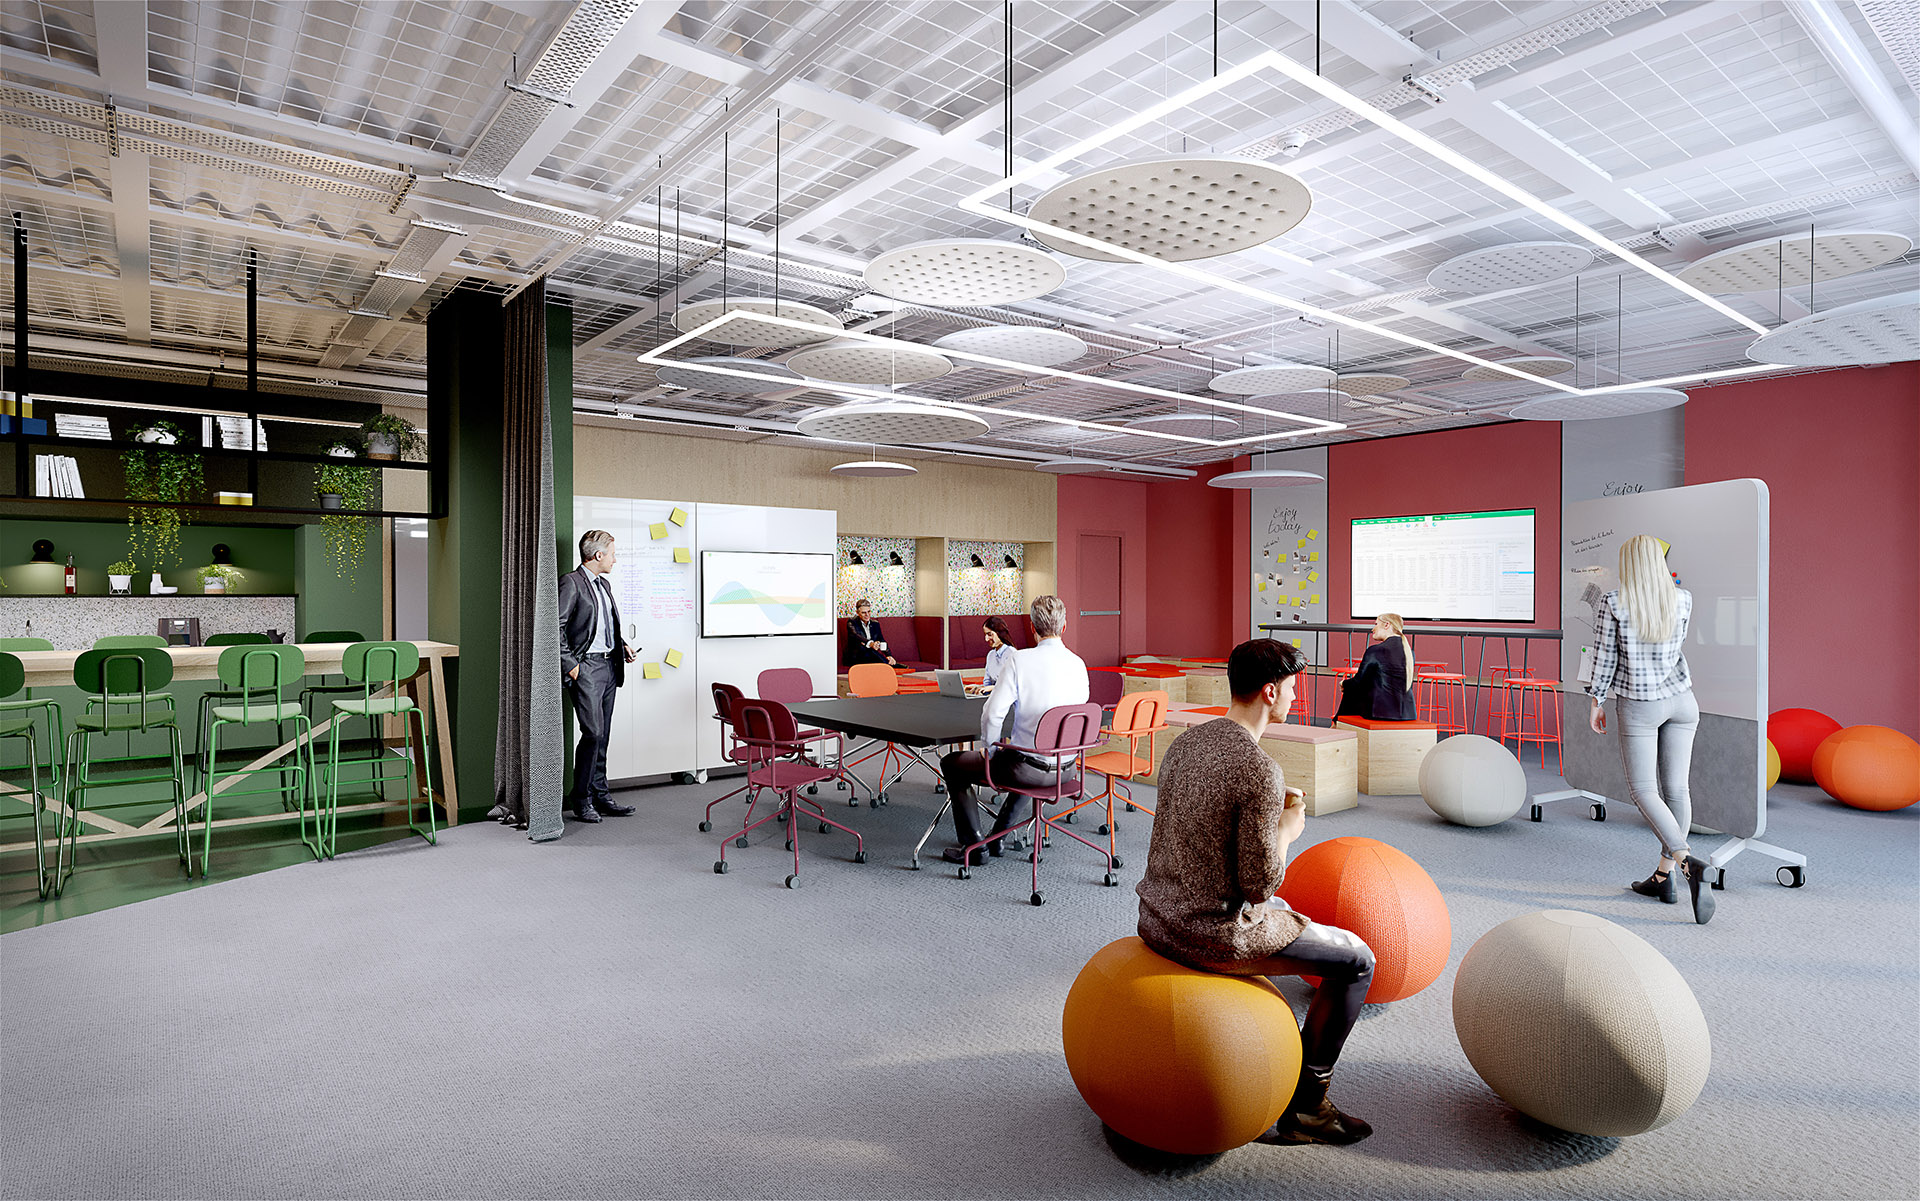 Photorealistic 3D rendering of the interior design of modern and original offices